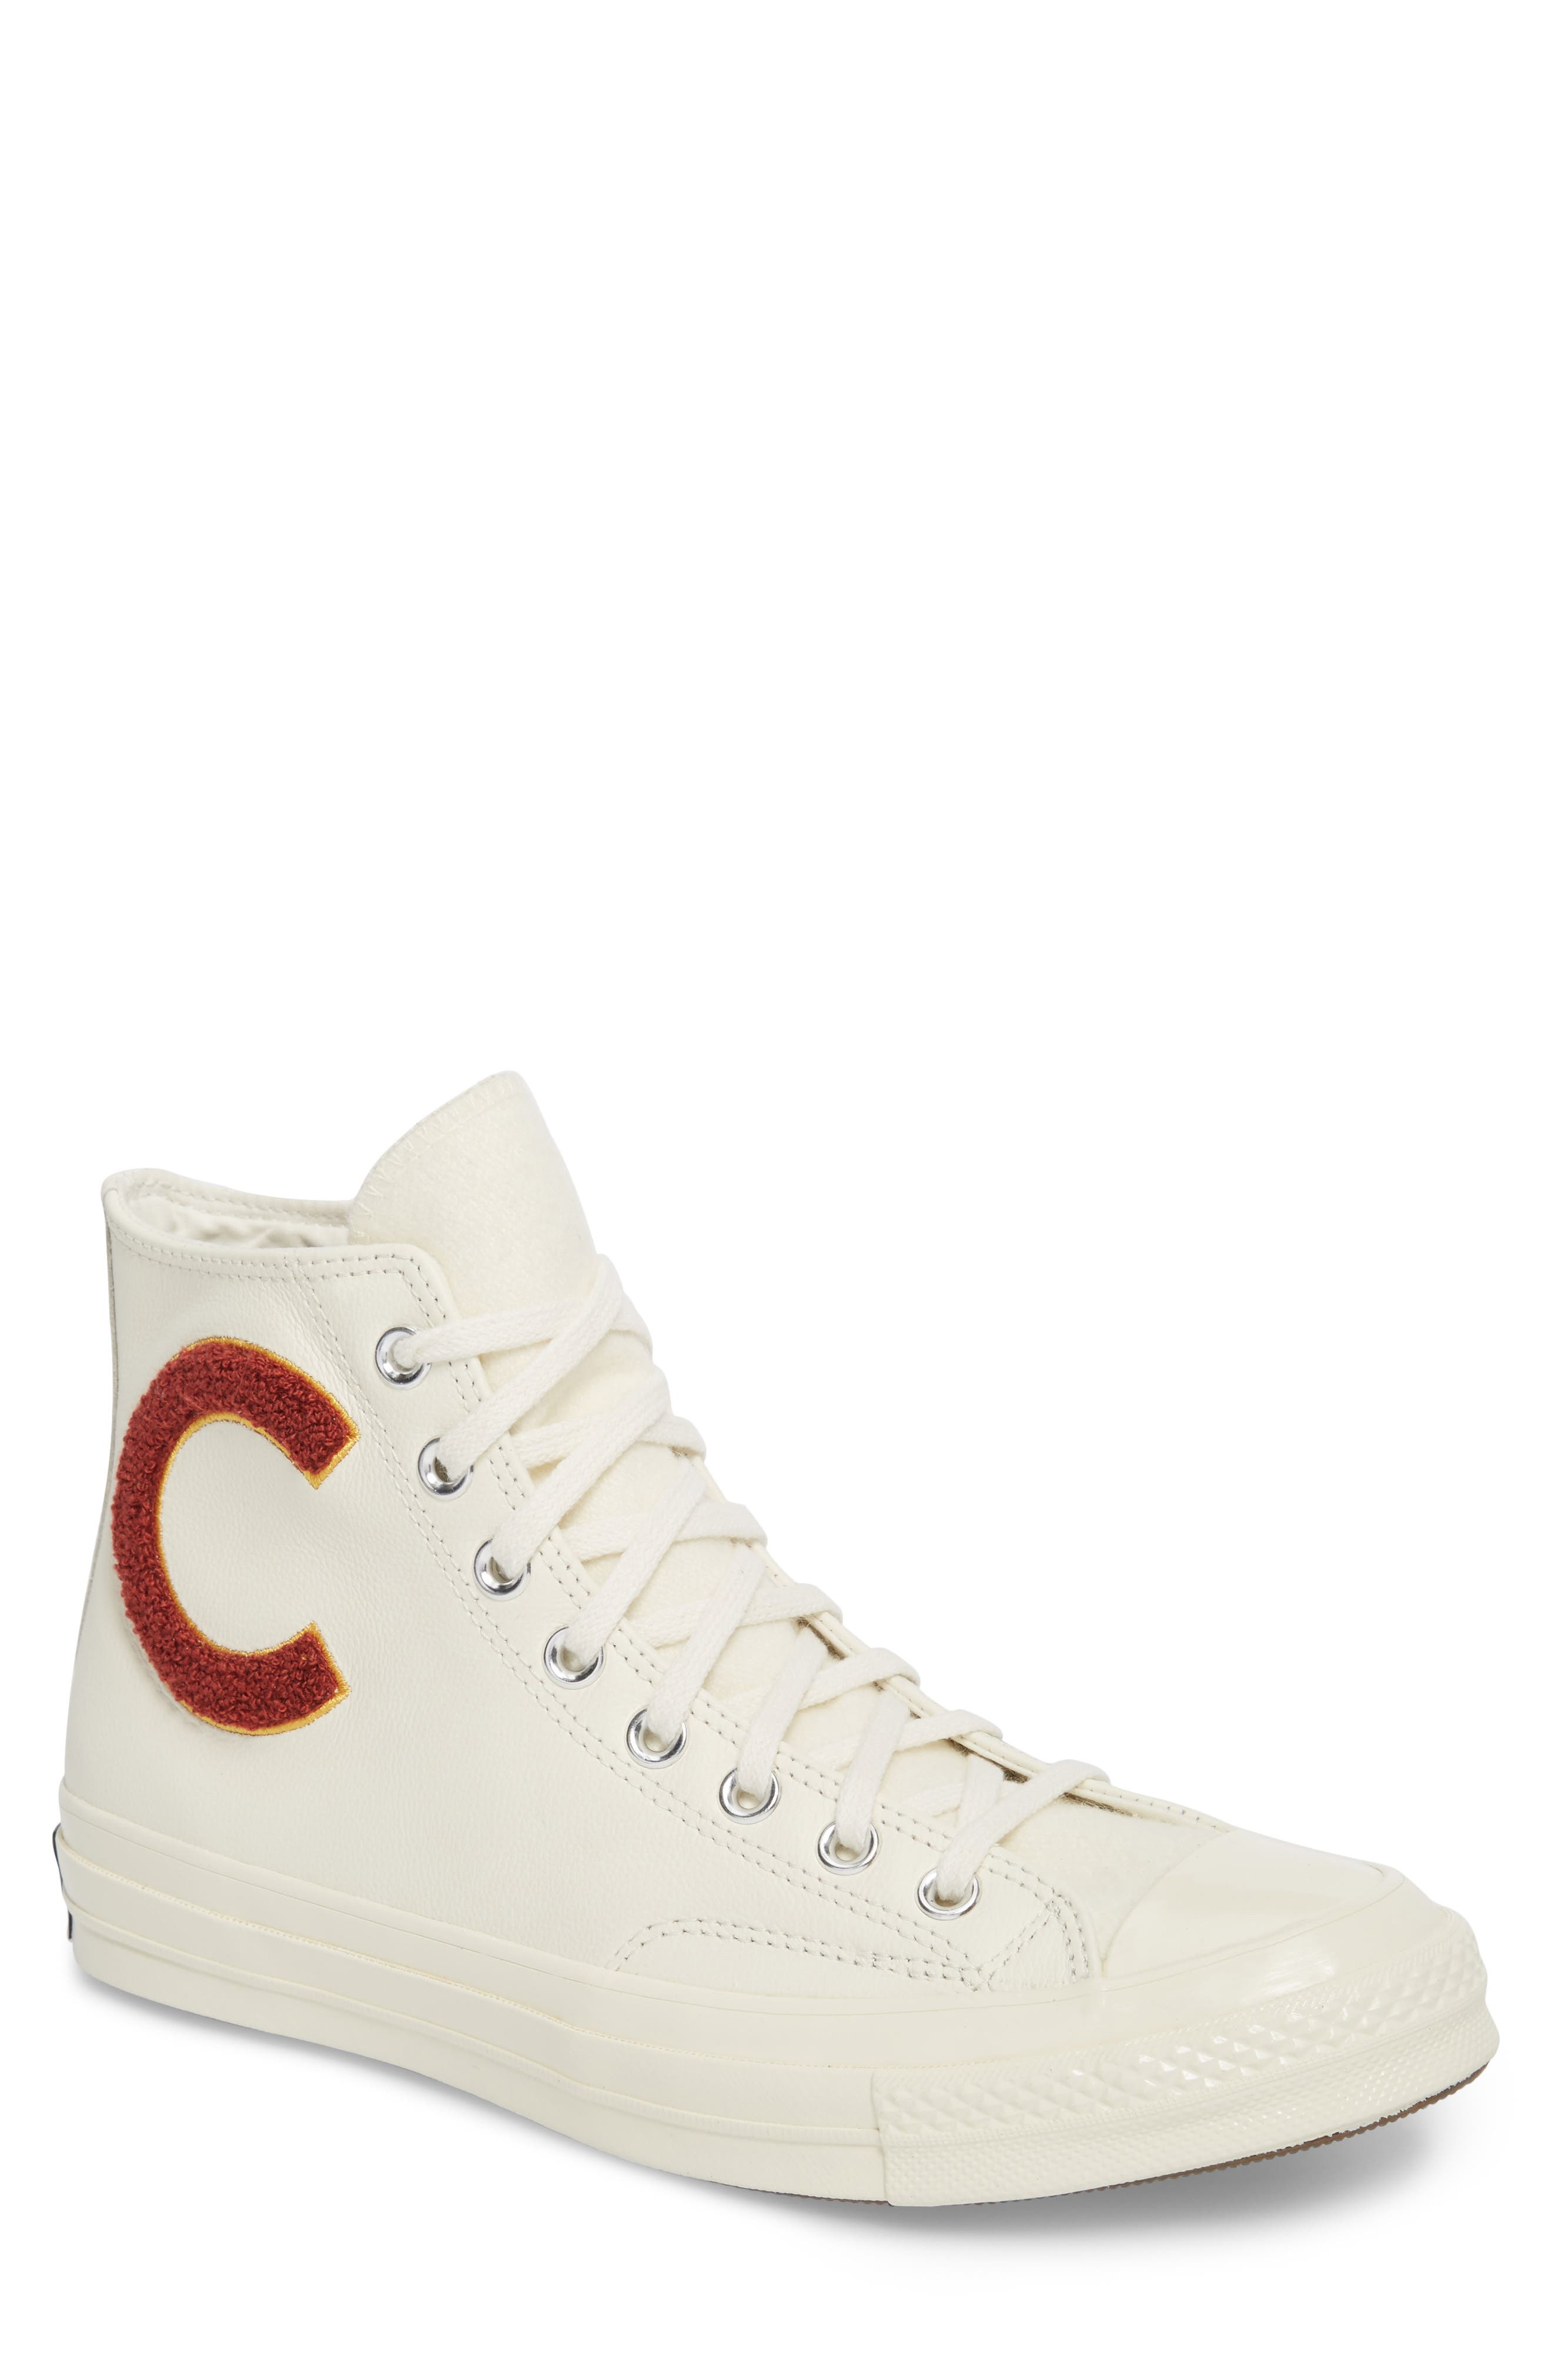 CONVERSE Chuck Taylor<sup>®</sup> All Star<sup>®</sup> Wordmark High Top Sneaker, Main, color, 281